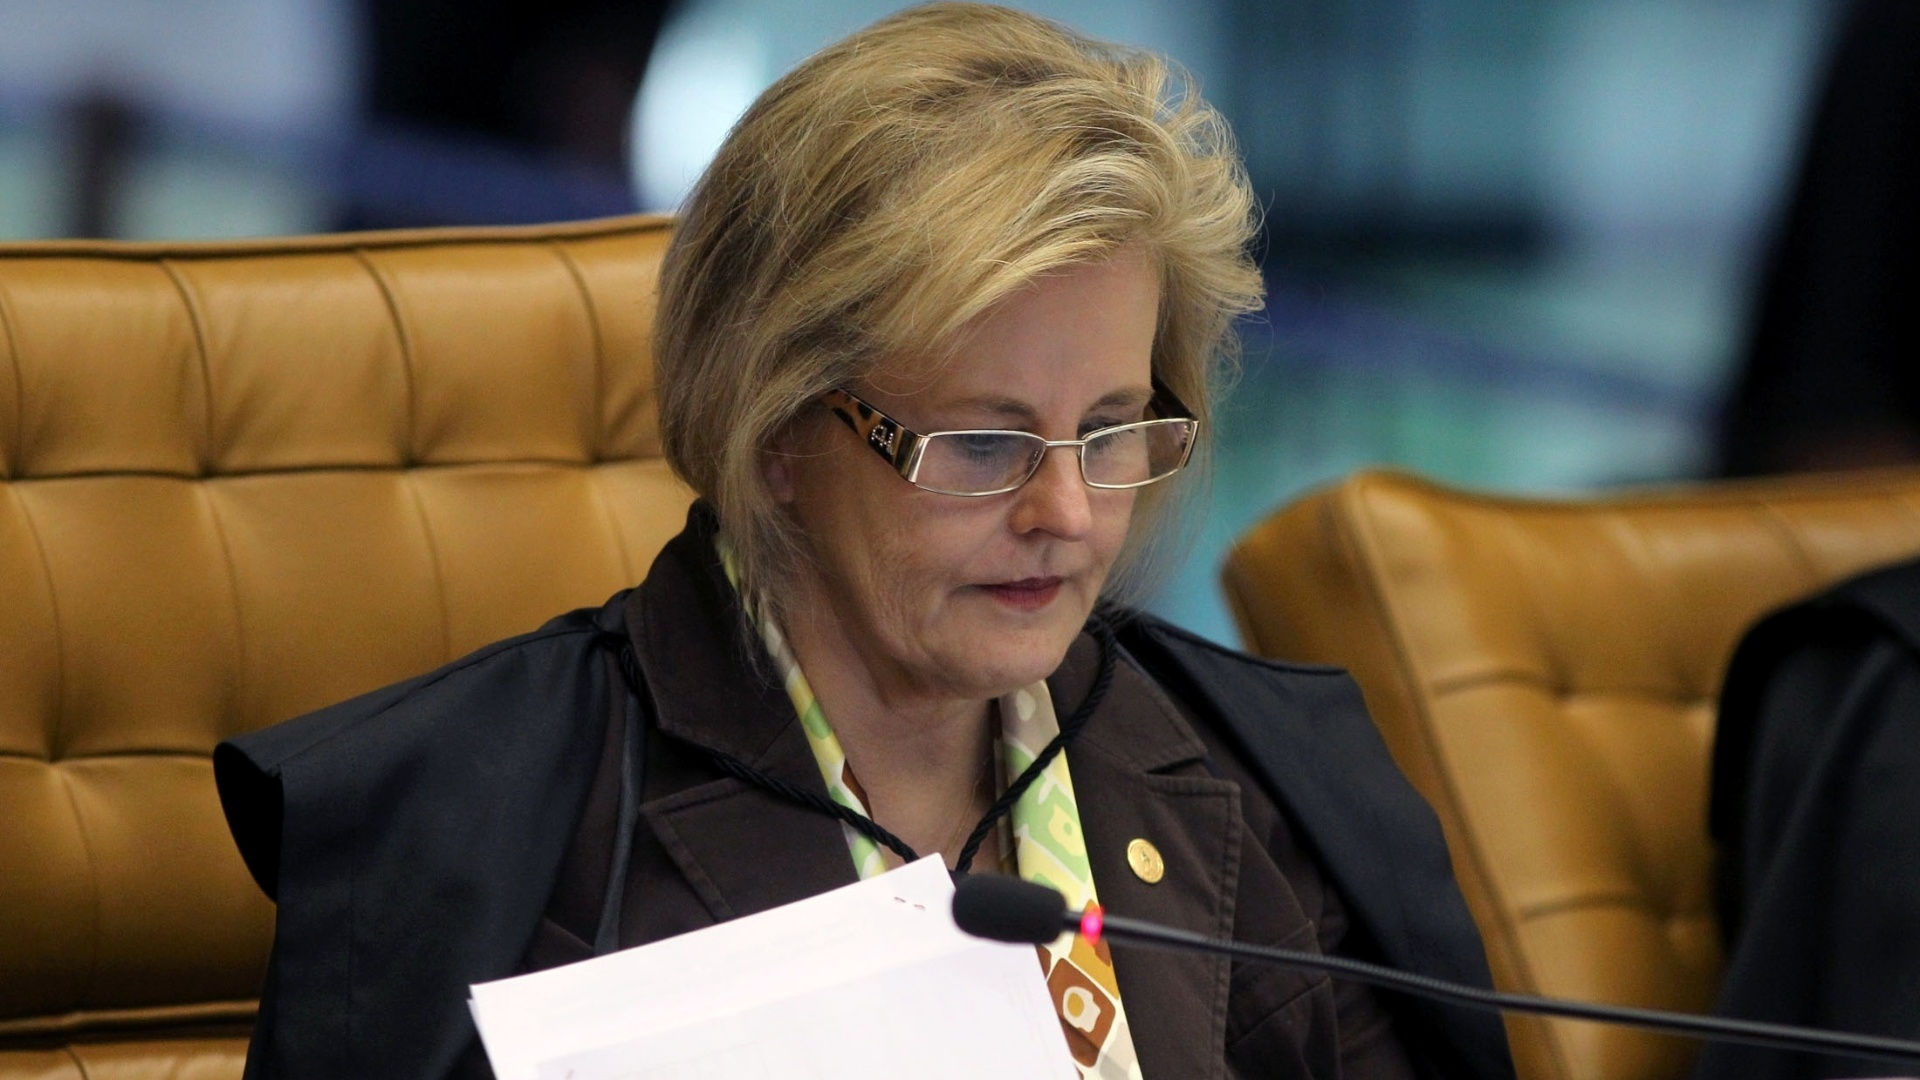 12.nov.2012 - A ministra do STF Rosa Weber participa de sesso do julgamento do mensalo, em Braslia. Os ministros do STF condenaram o ex-ministro da Casa Civil Jos Dirceu  pena de dez anos e dez meses de priso pelos crimes de corrupo ativa e formao de quadrilha. O ex-ministro ainda ter de pagar multa de R$ 676 mil